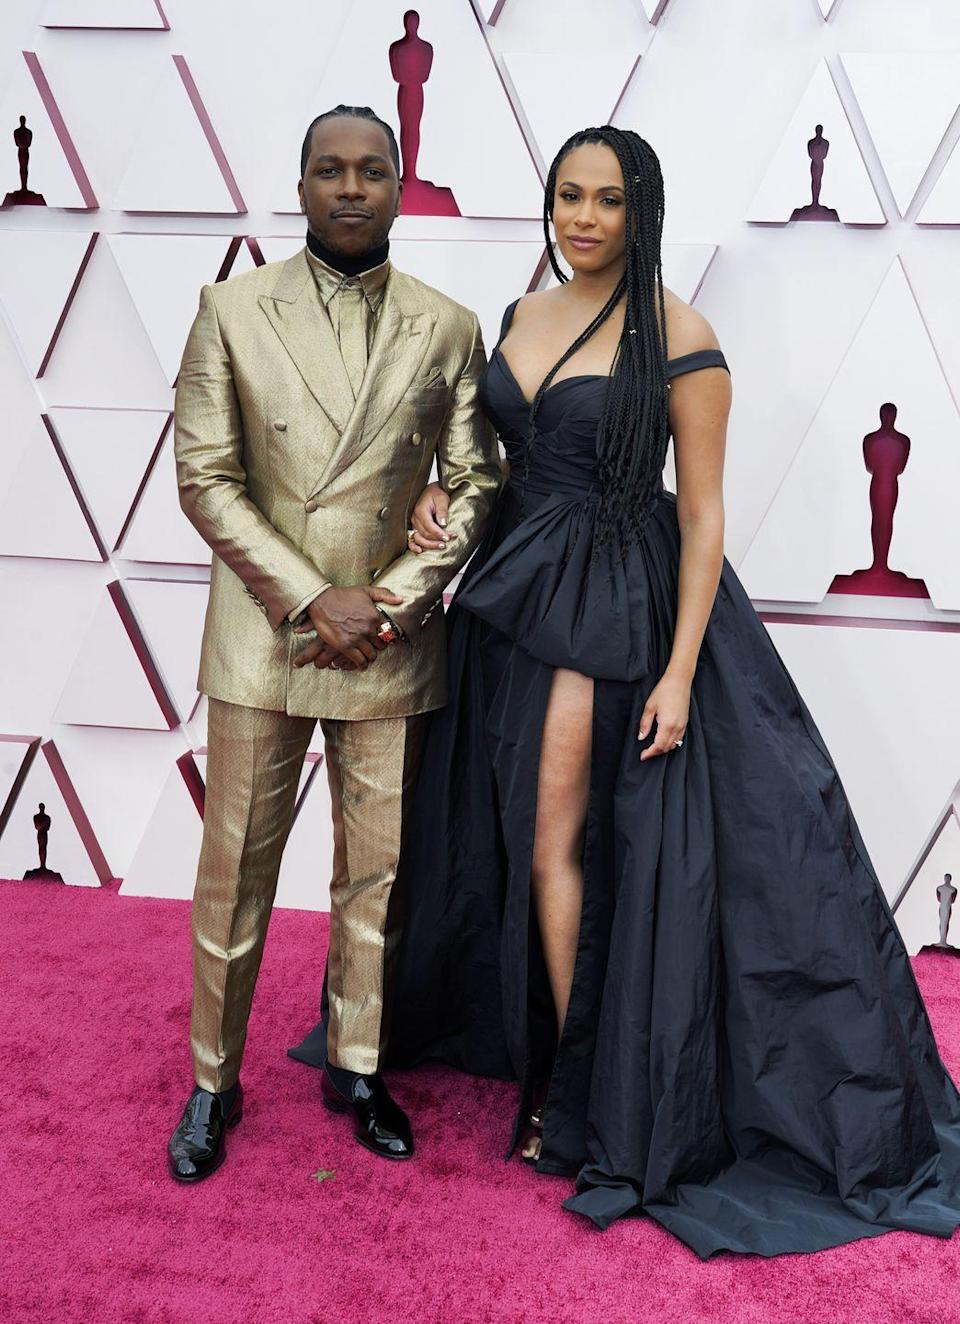 <p>Leslie Odom Jr. wears Brioni and a Cartier ring. Nicolette Robinson wears Zuhair Murad.</p>